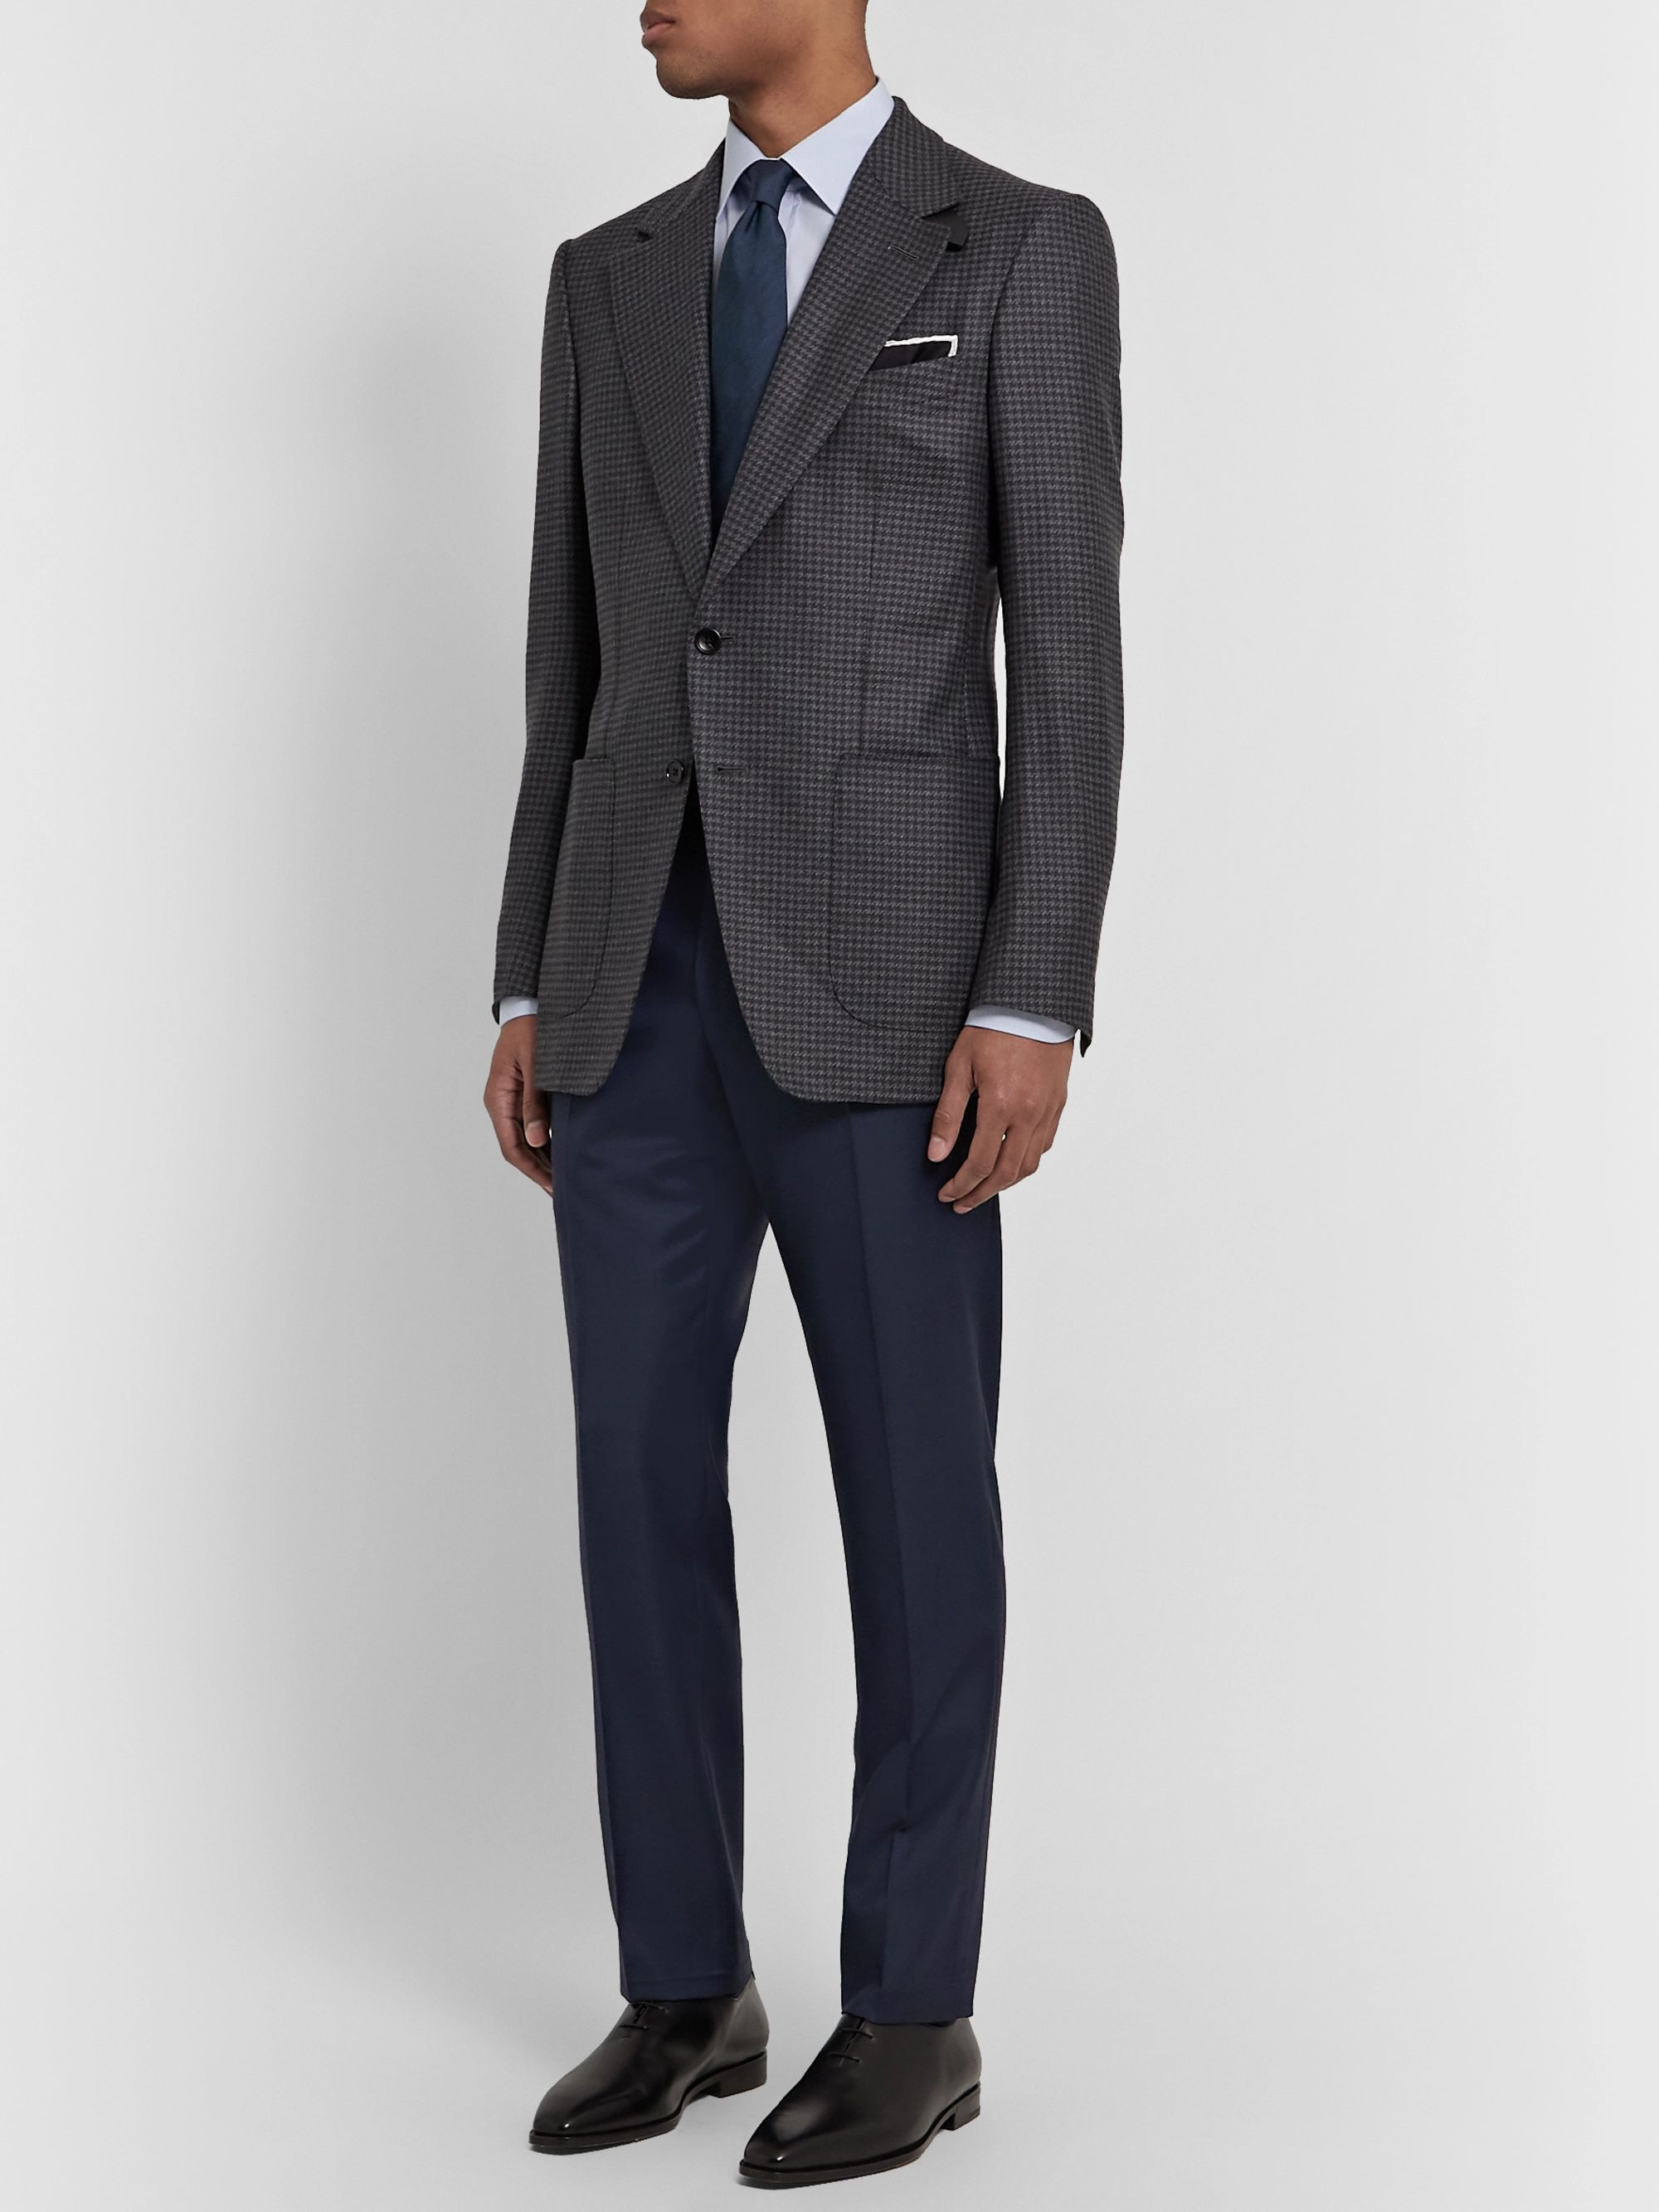 TOM FORD Navy Slim-Fit Super 110s Wool-Sharkskin Suit Trousers